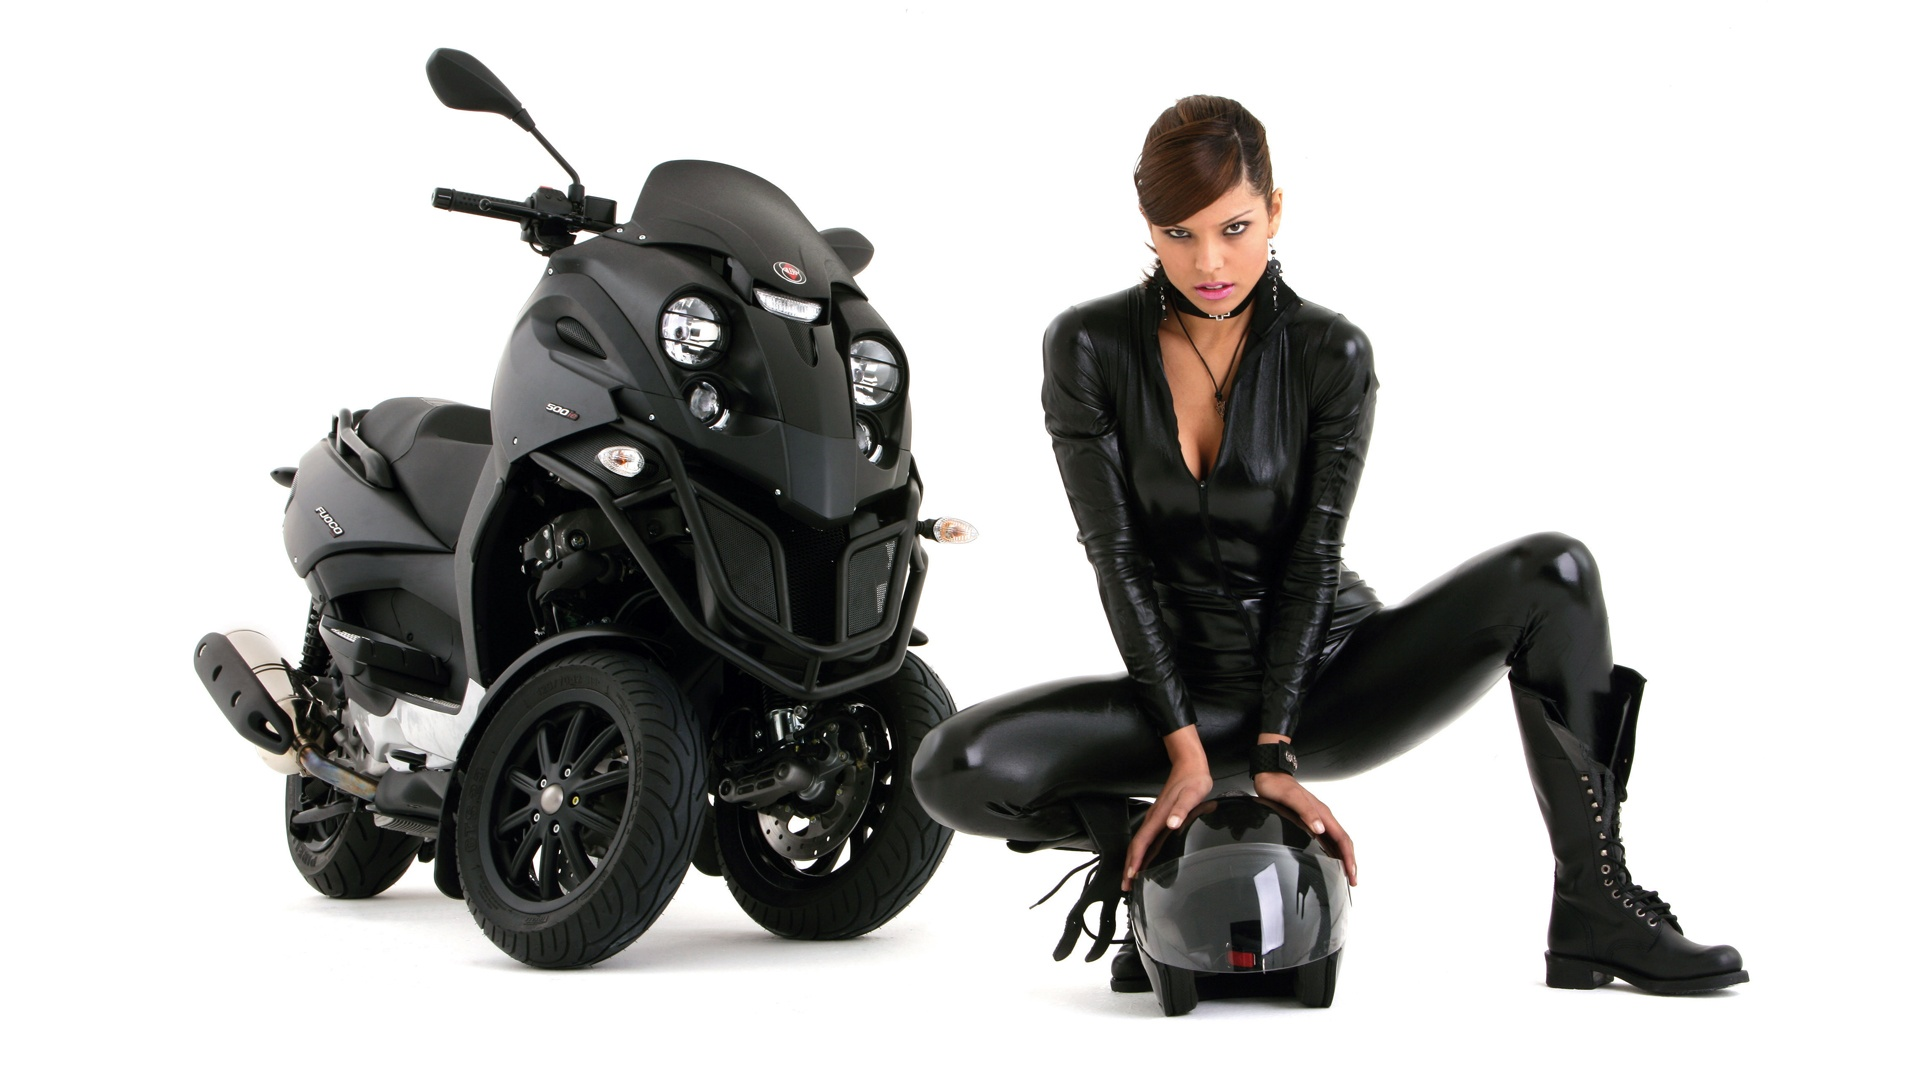 Hot Girl, Hot Bike Wallpapers